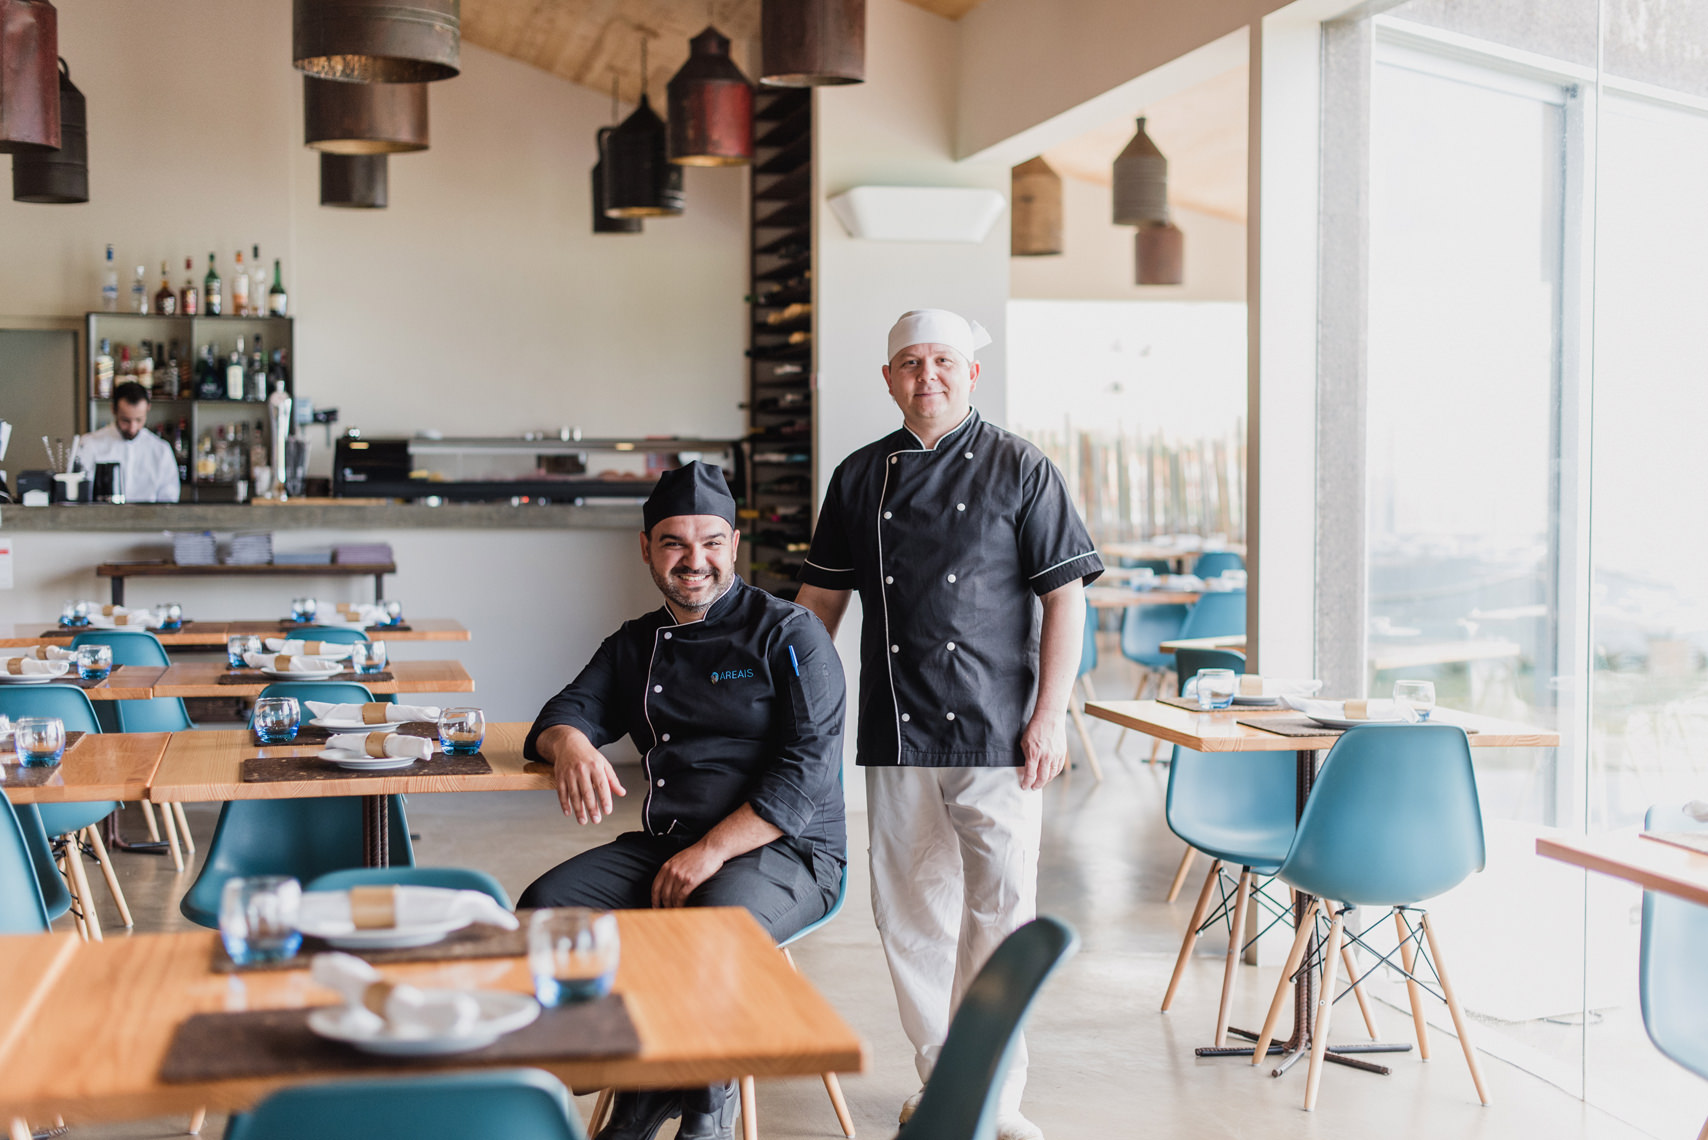 Head chefs at Santa Barbara Eco-Beach Resort, Azores, Portugal